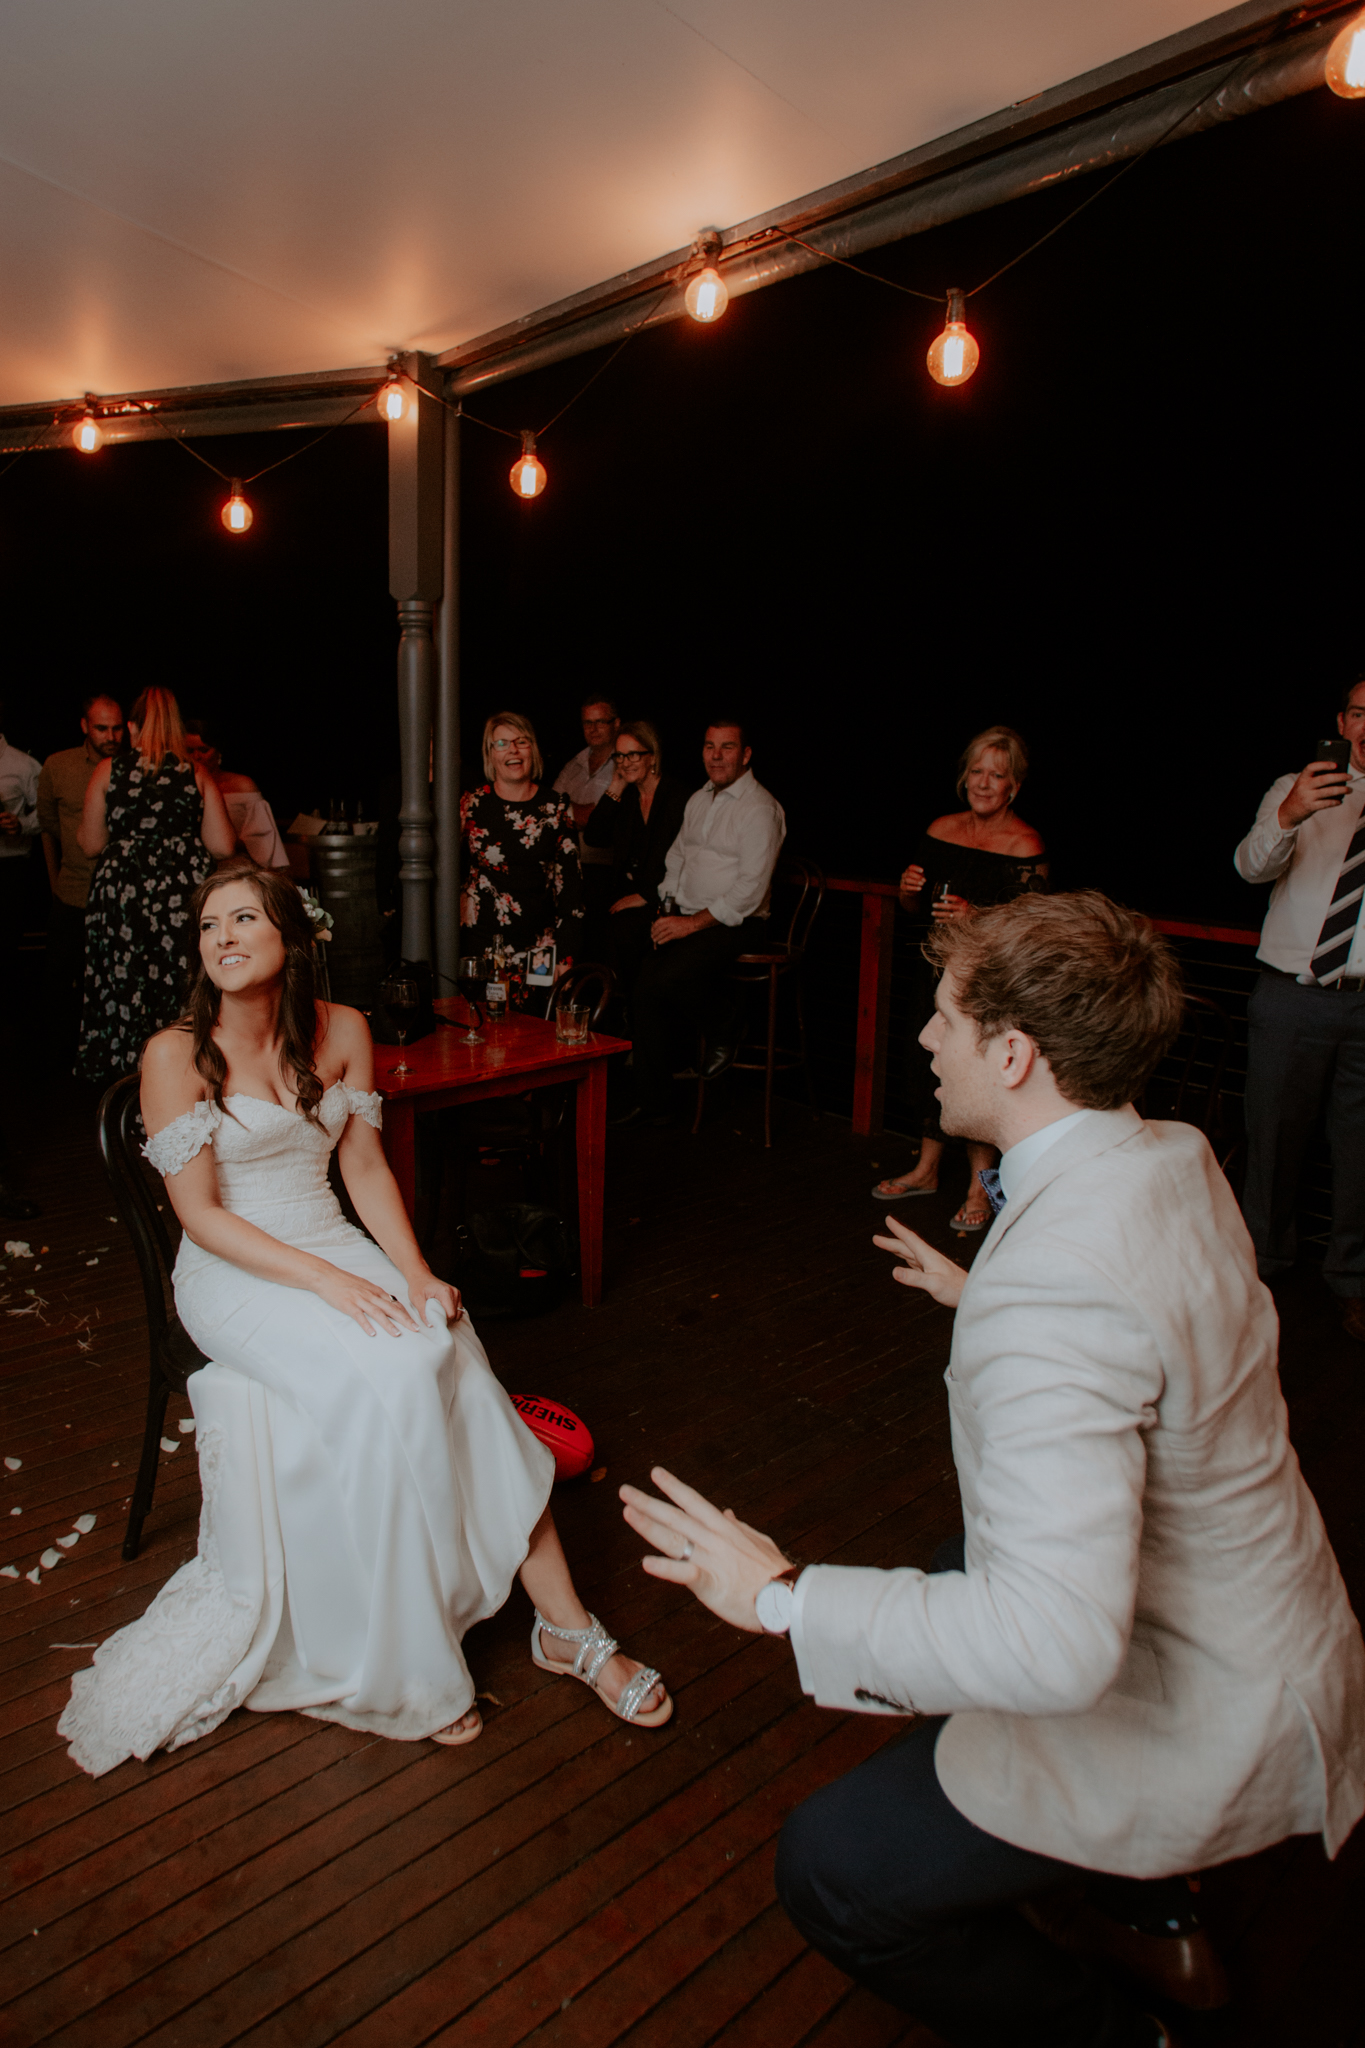 The-Riverstone-Estate-Wedding-Emotions-and-Math-252.jpg